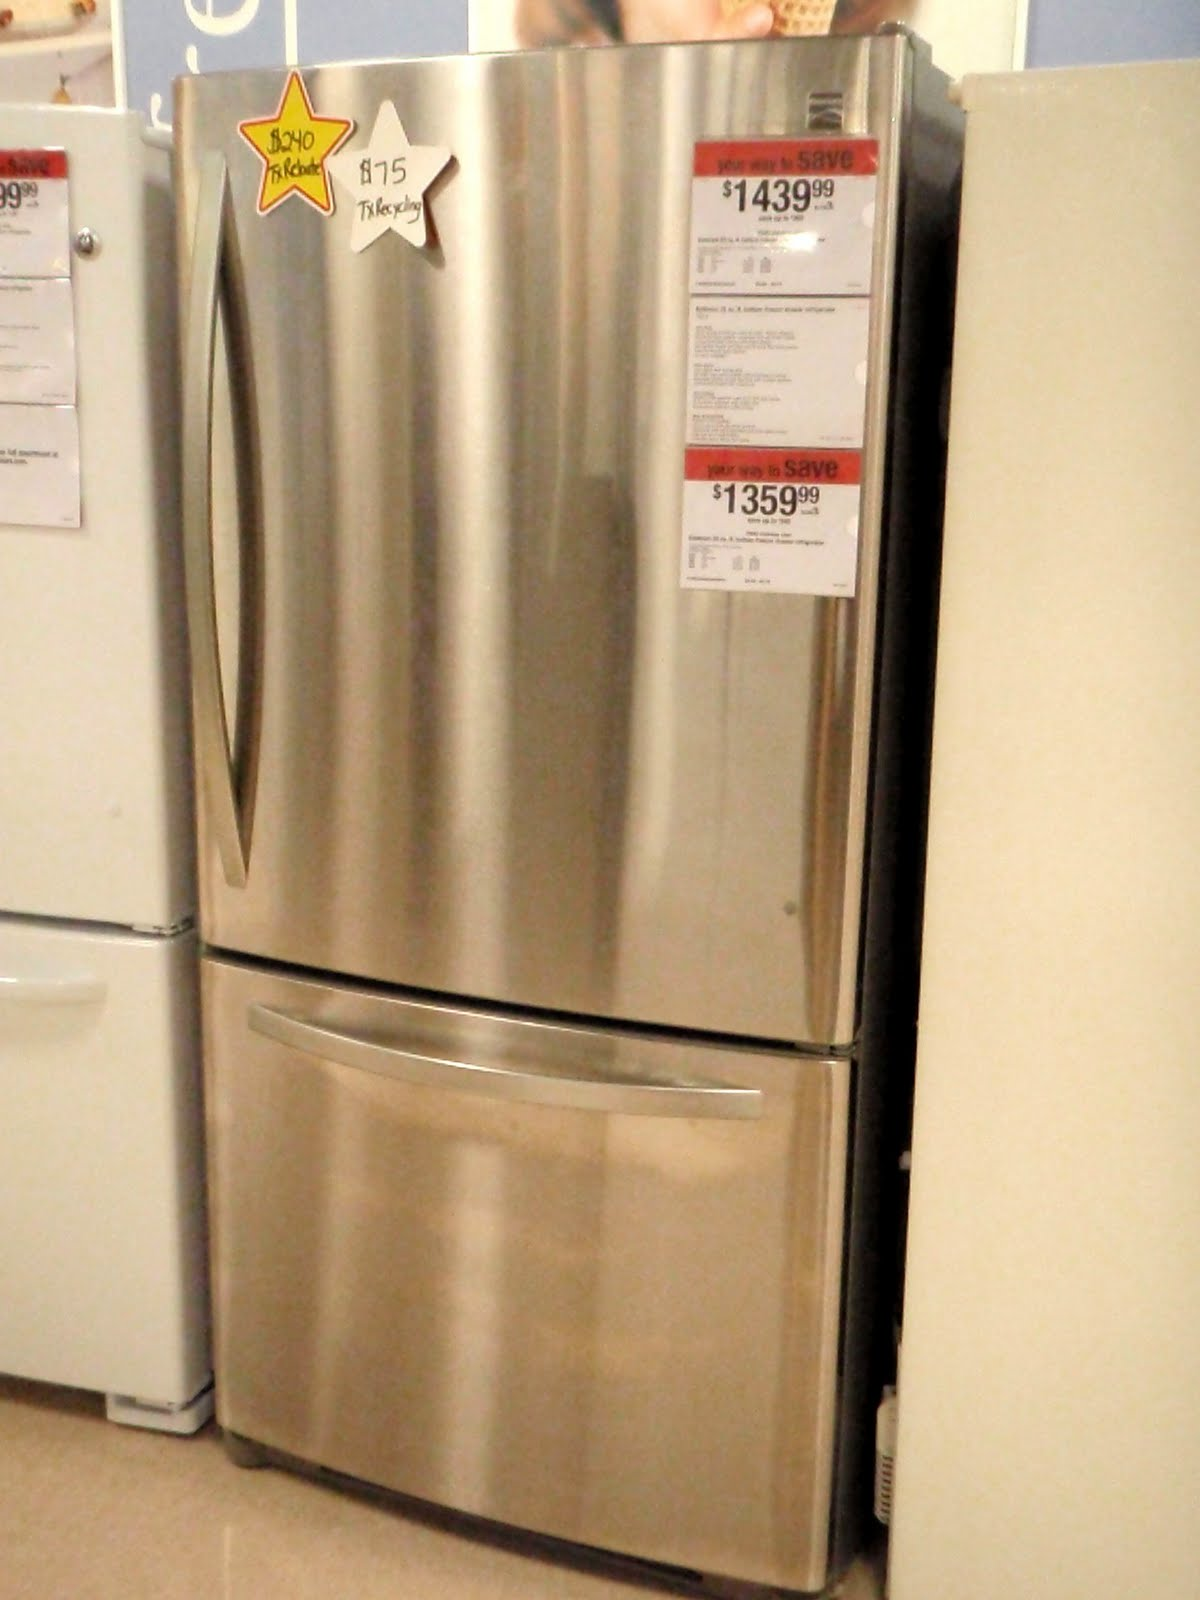 ordinary Kitchen Appliances List With Price #9: My dishwasher list includes: stainless or stainless look, integrated controls preferred, handle preferred, options for storage of larger items, under $500.]